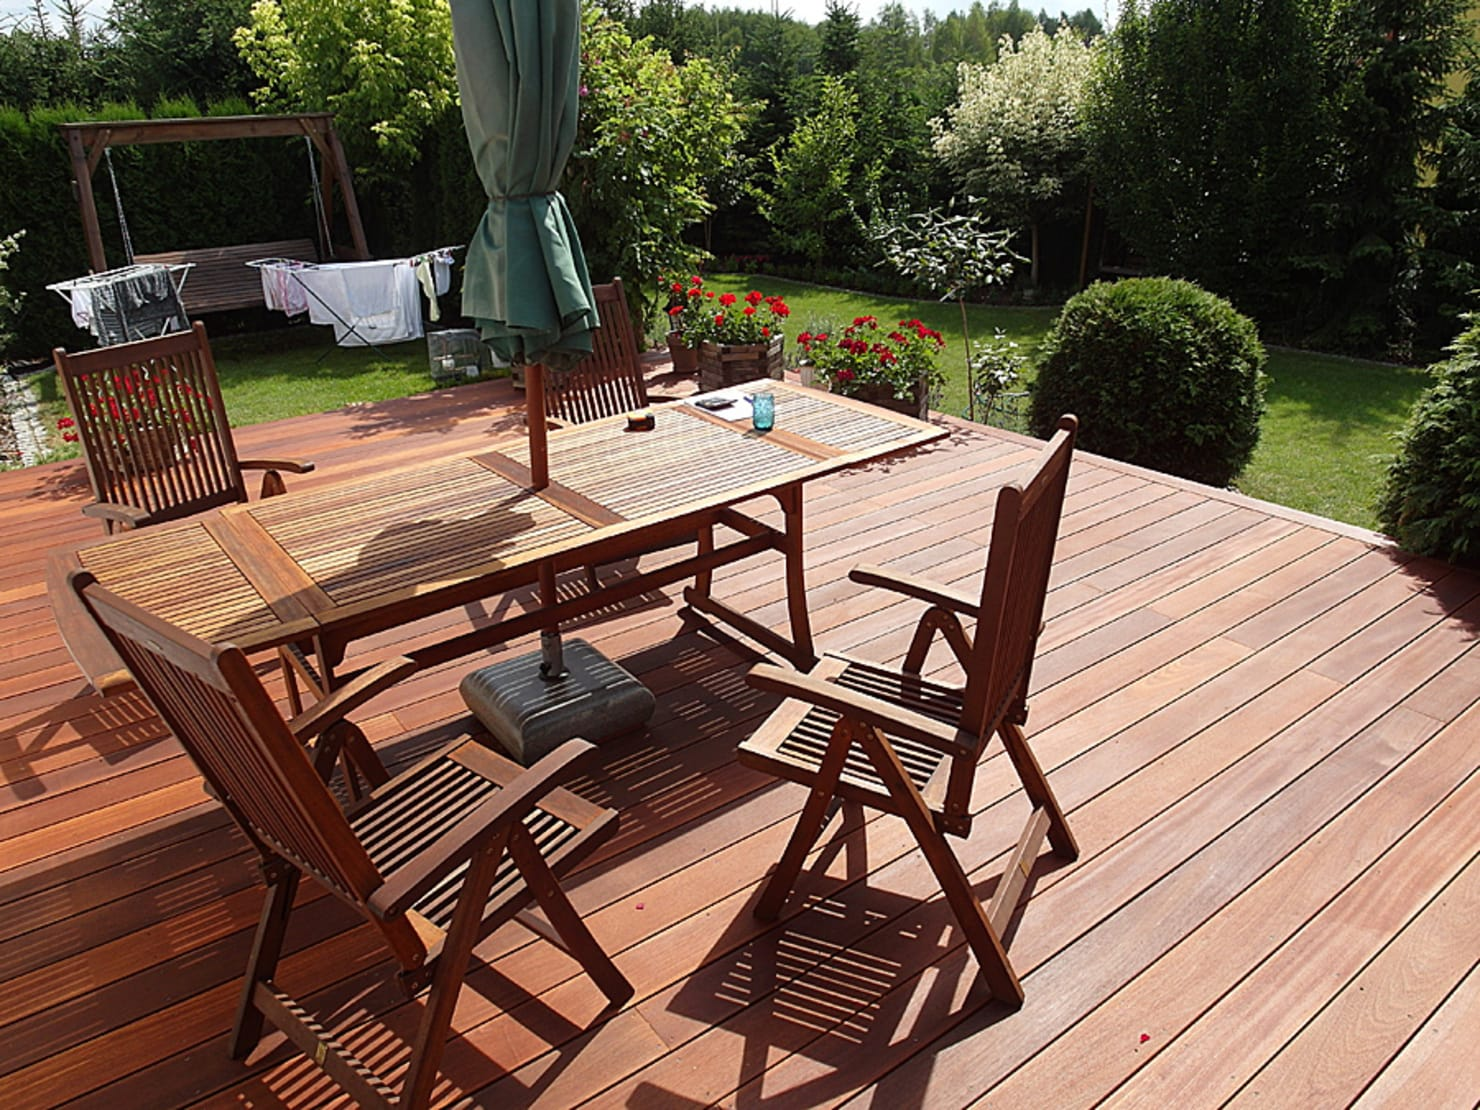 Woodworking: 13 simple ideas for the backyard or garden